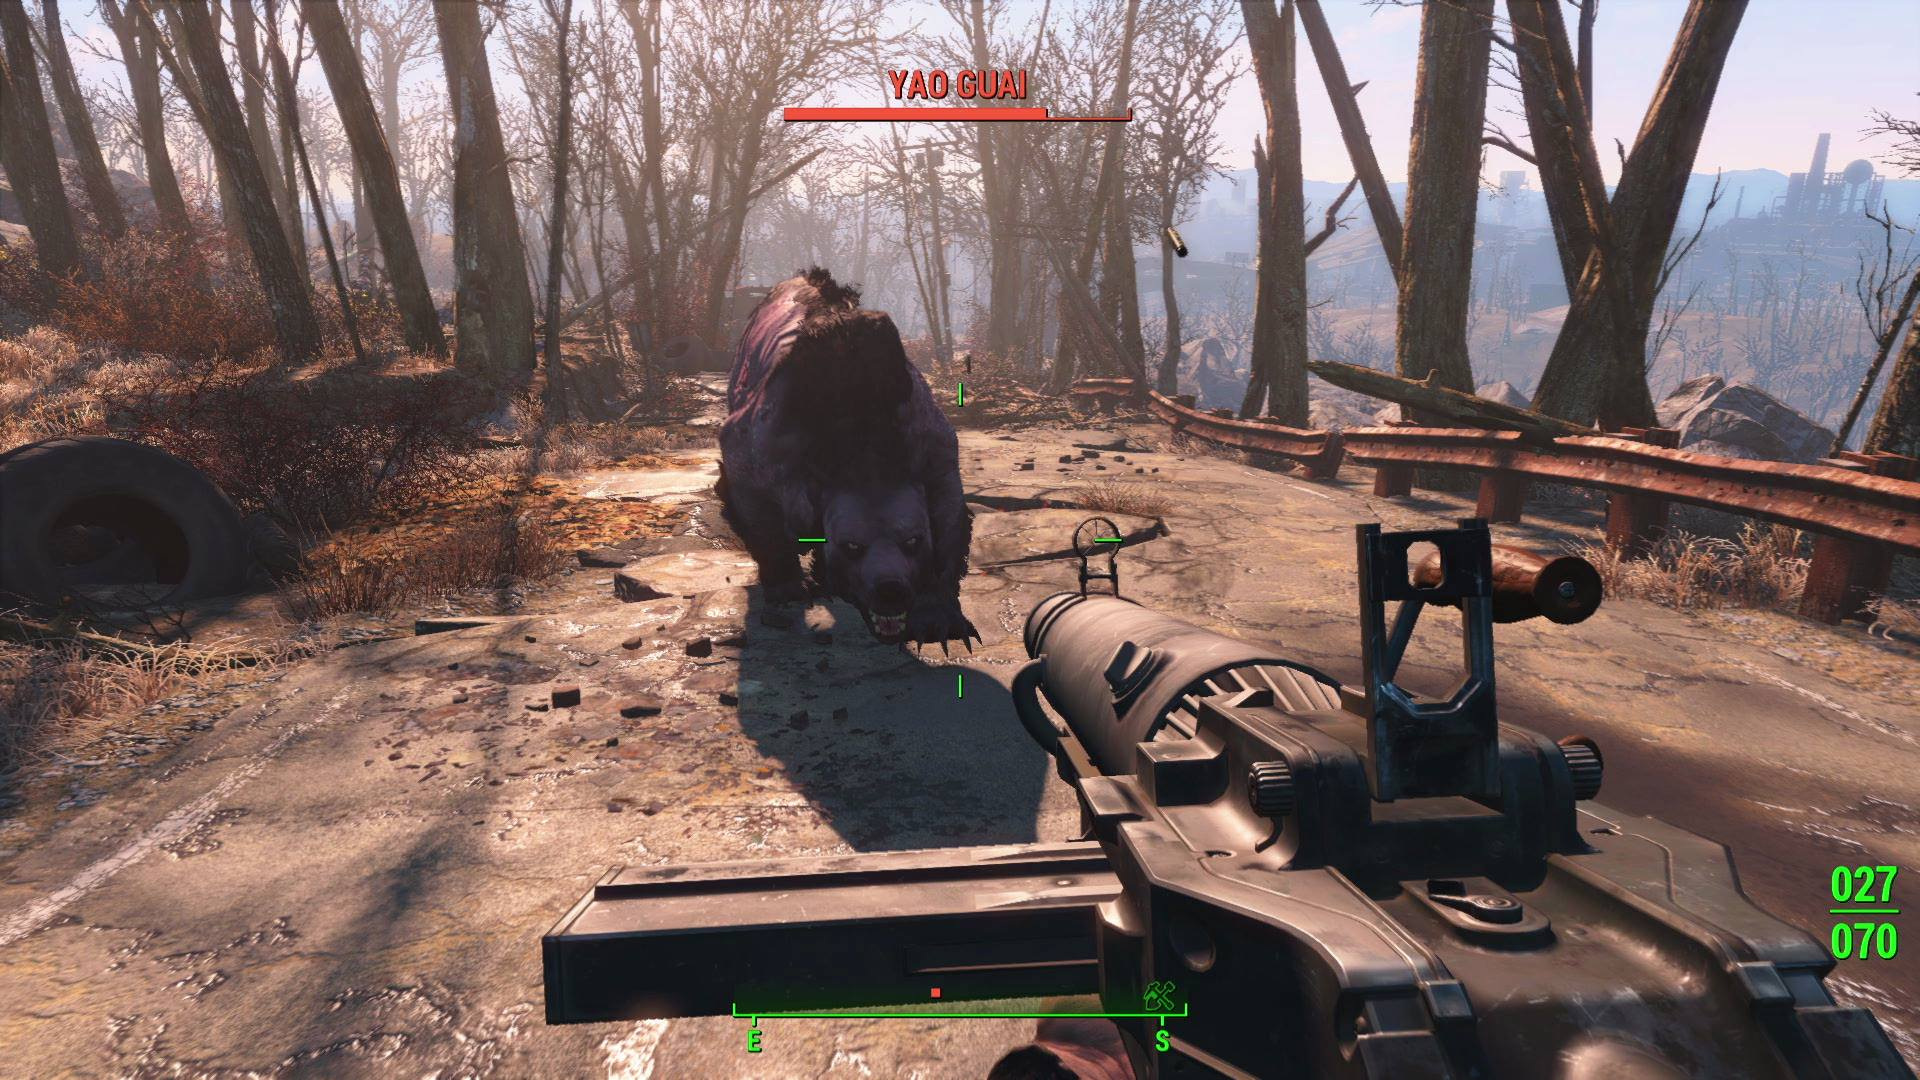 Fallout 4 [1.5.307.0.0/DLC] (2015) PC | Repack By =nemos= - Скриншот 2